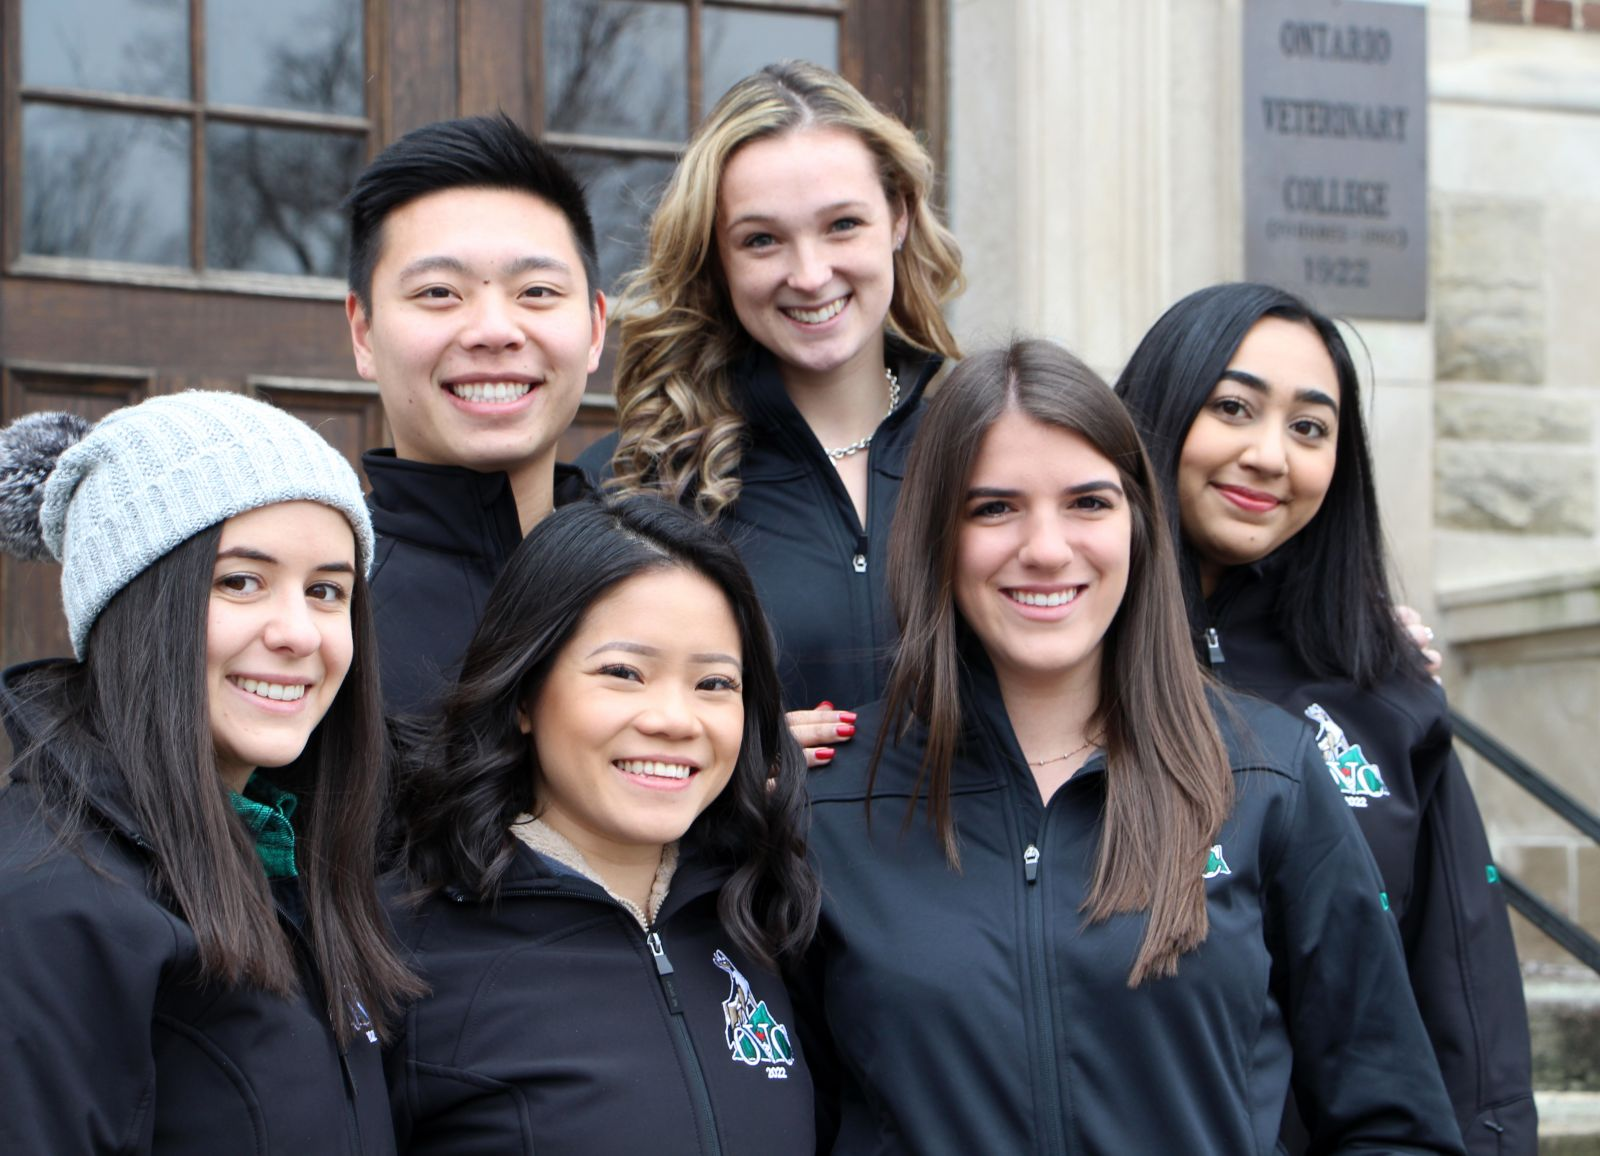 Ontario Veterinary College student veterinarians on the front steps of the college.